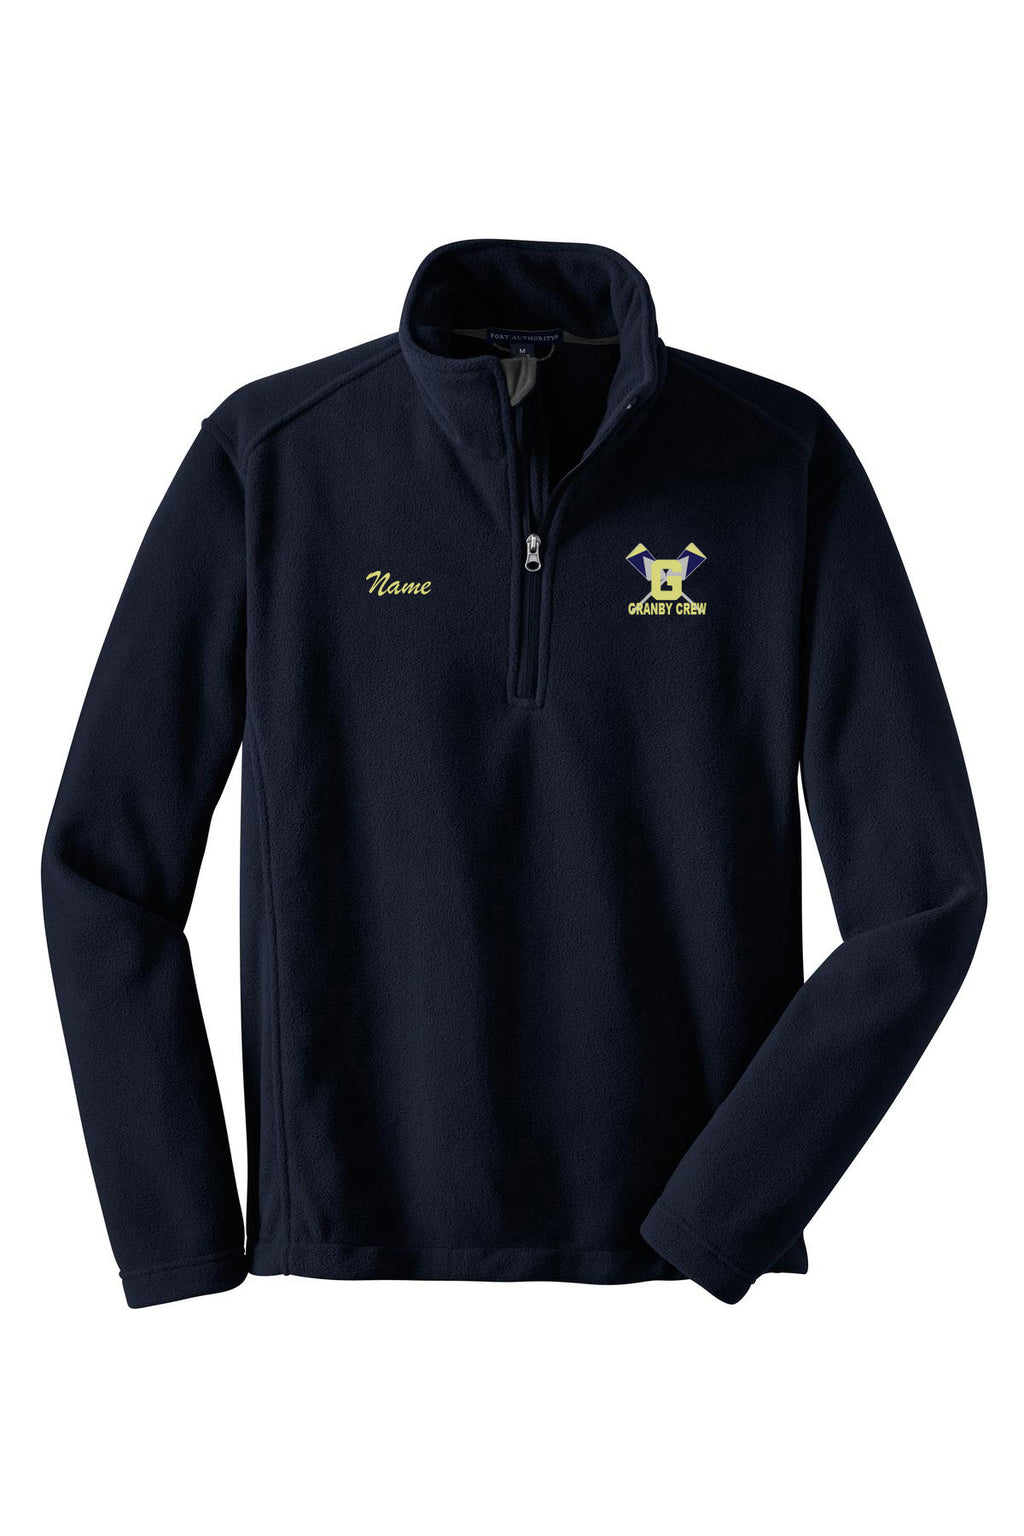 1/4 Zip Granby Crew Fleece Pullover